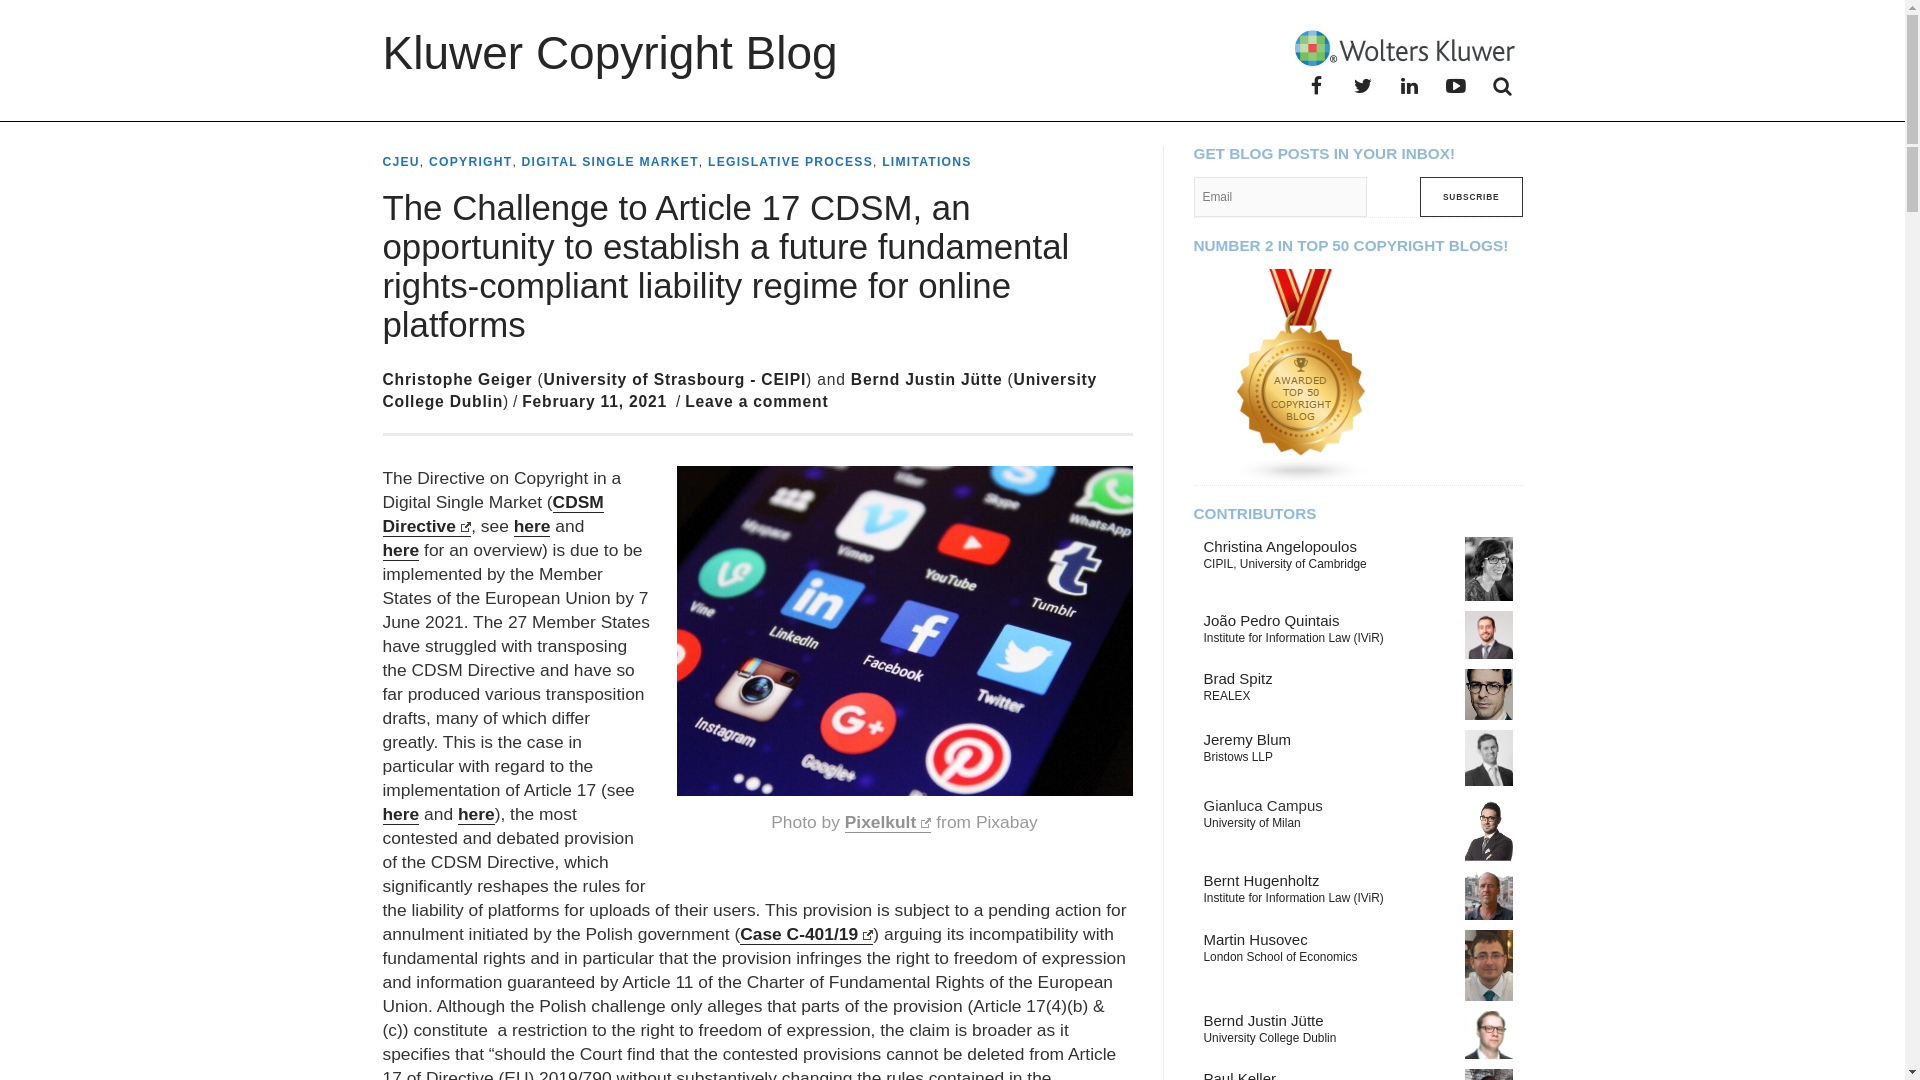 Fairness Rocks News The Challenge to Article 17 CDSM, an opportunity to establish a future fundamental rights-compliant liability regime for online platforms